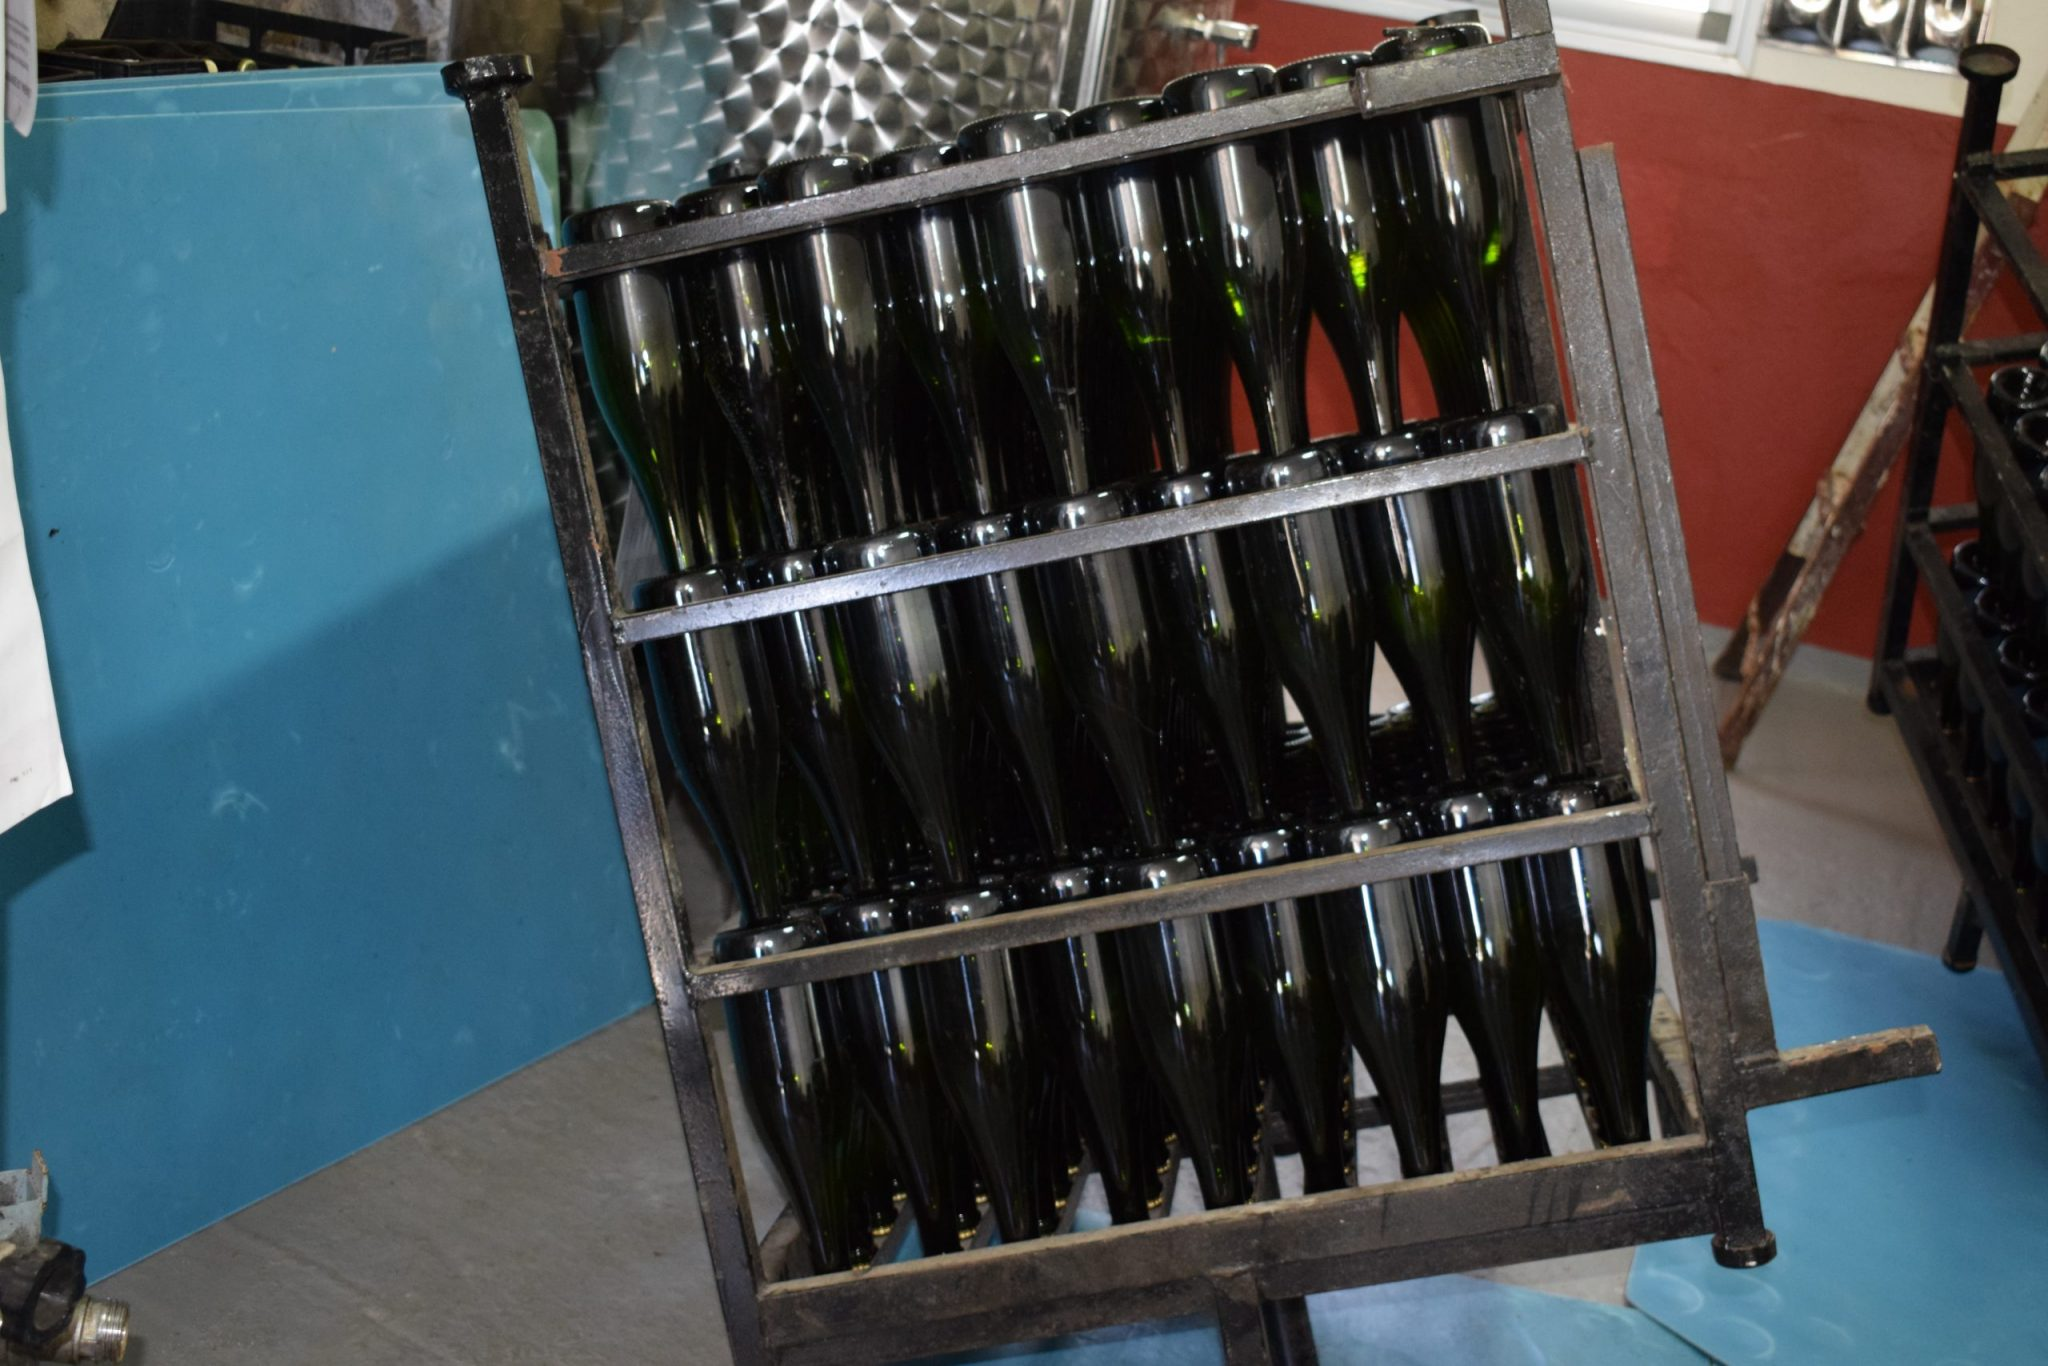 A way to pack bottles of cider.